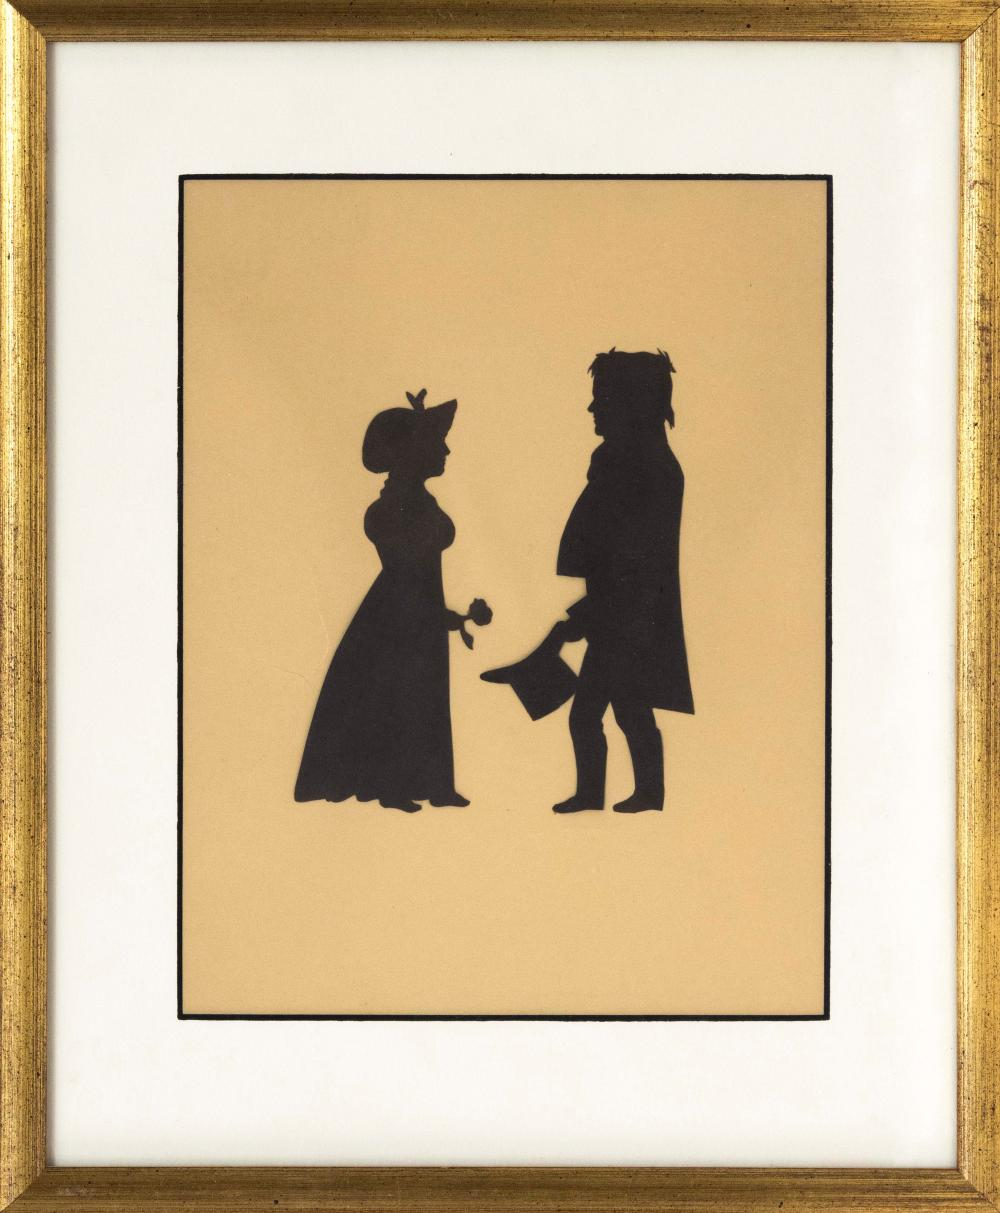 CUT PAPER SILHOUETTE OF A MAN AND WOMAN Woman holding a flower and man holding a top hat. Letter affixed verso identifies the subjec...